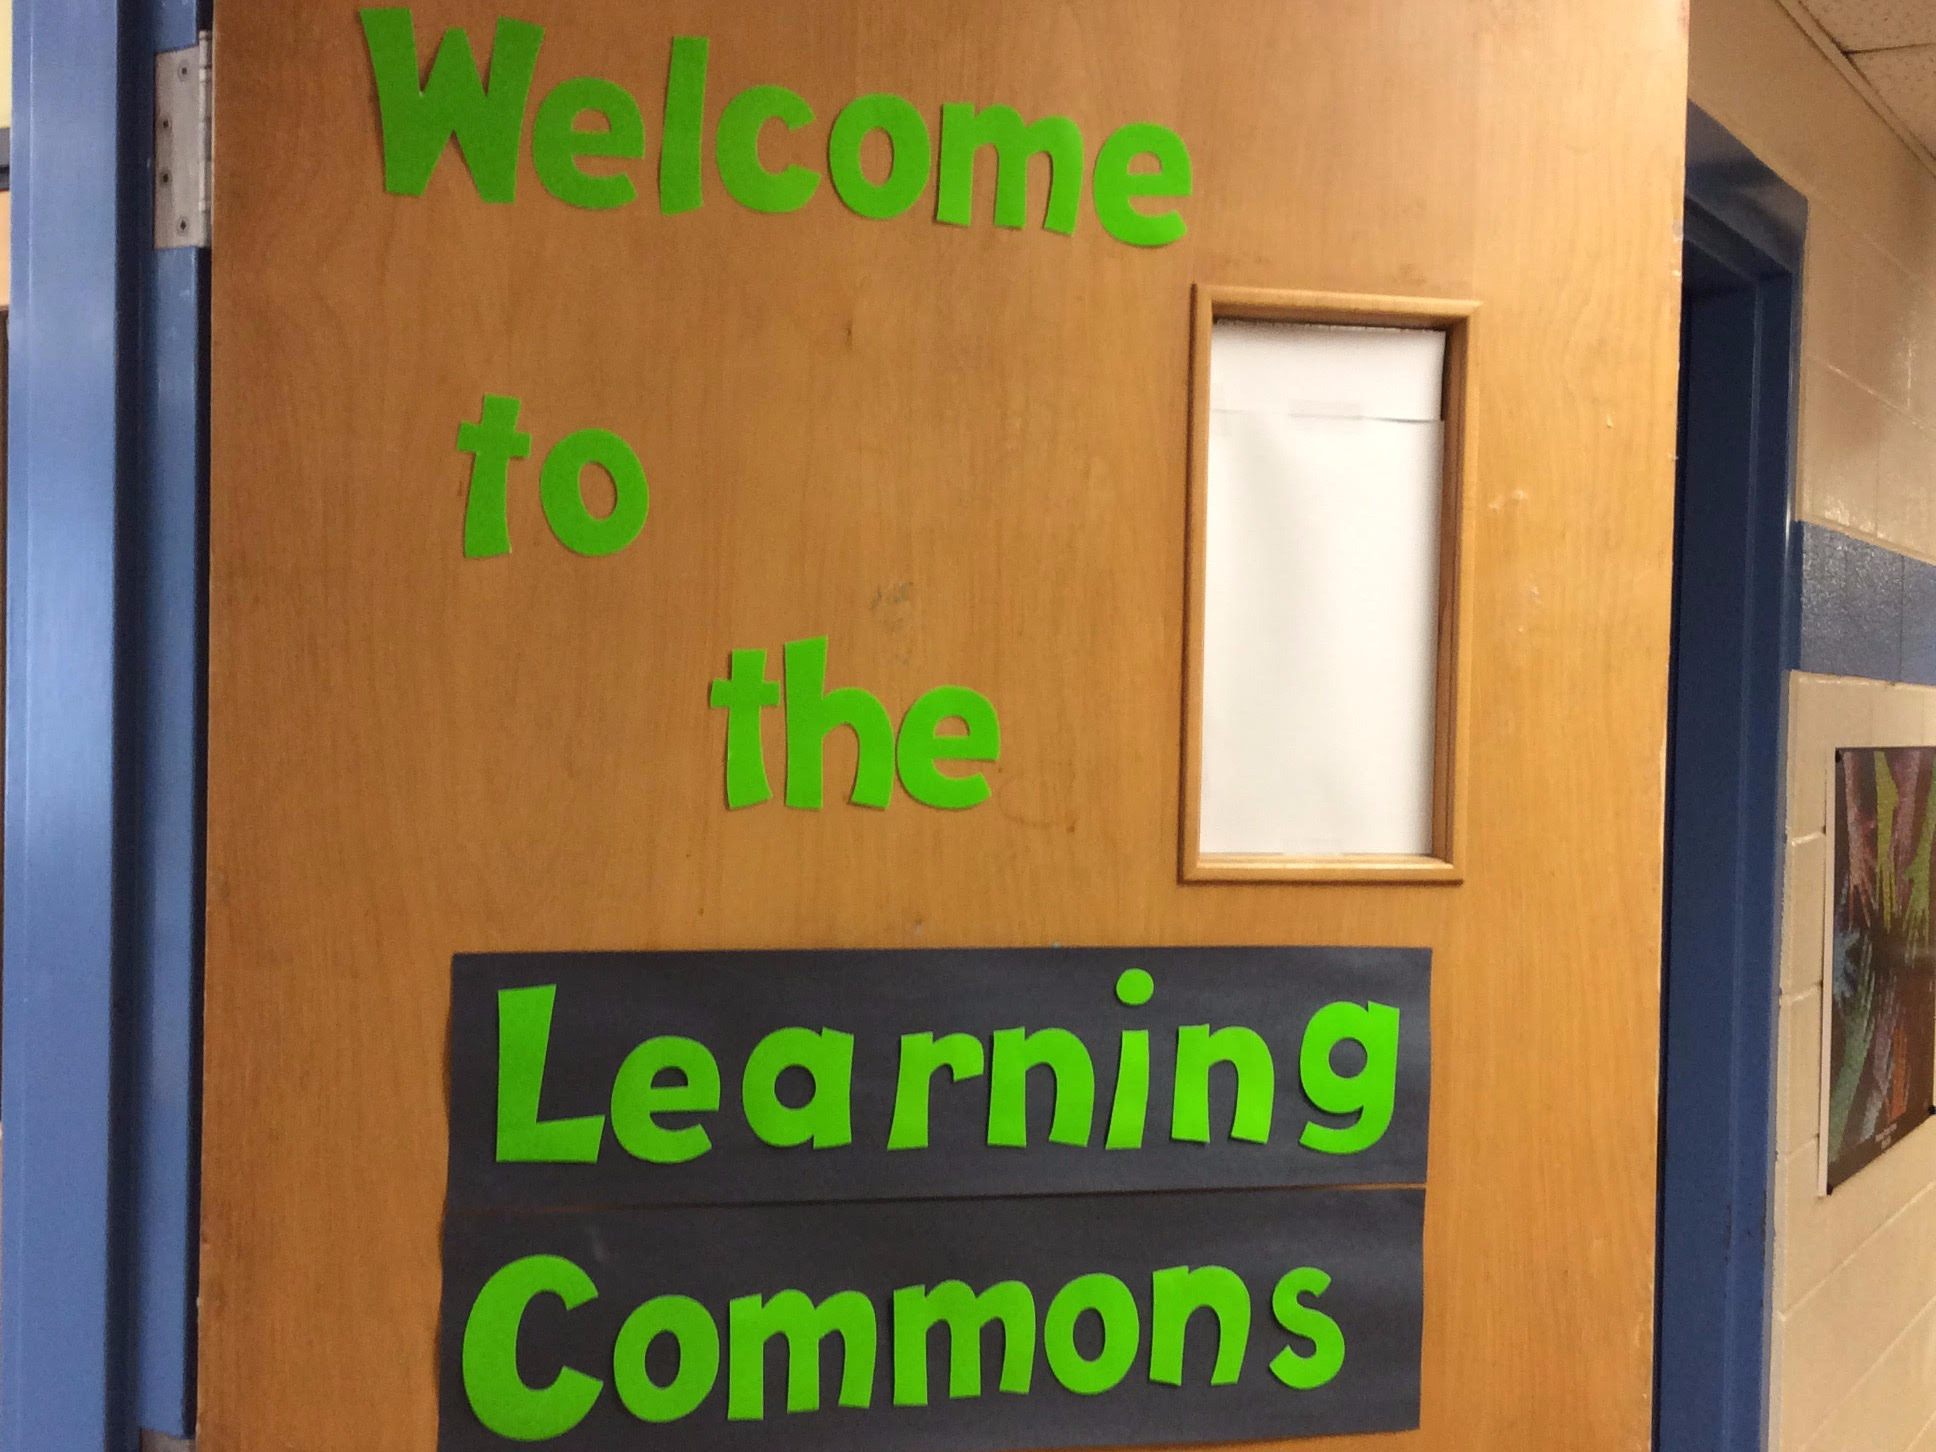 Parkway Learning Commons